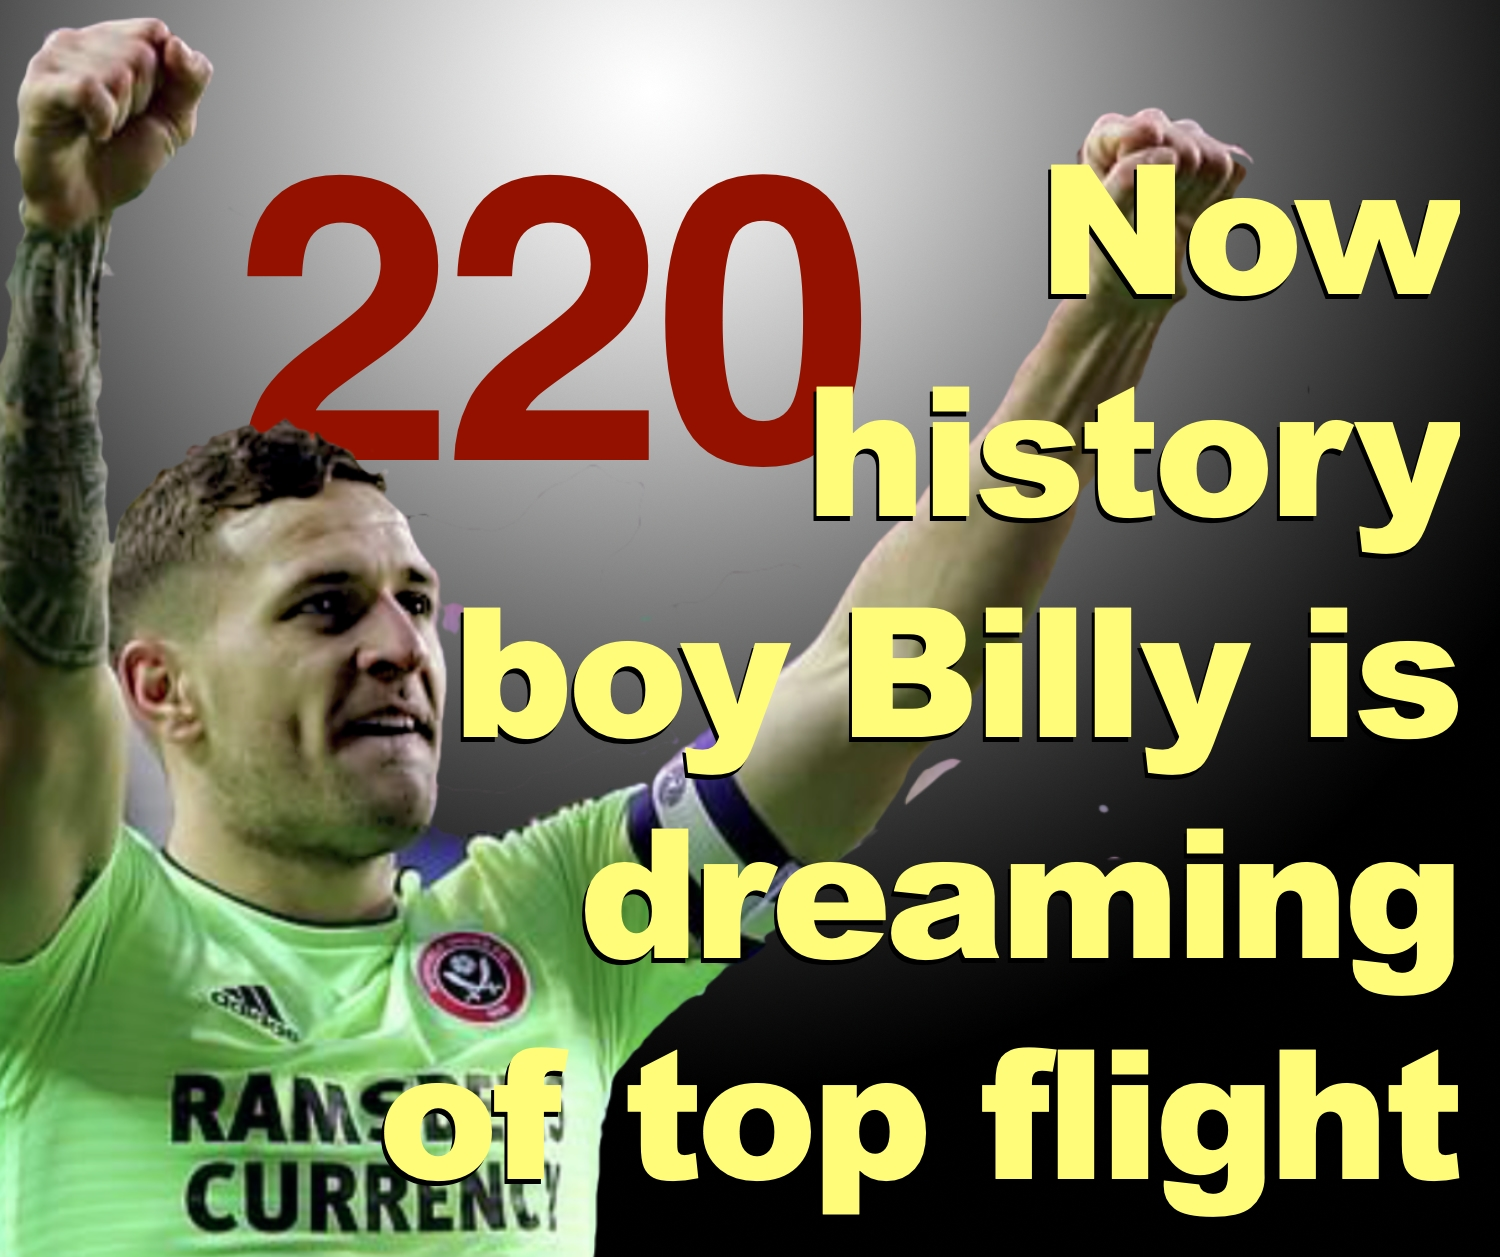 Billy Sharp is dreaming of top flight football with Sheffield United after becoming the 21st century's highest English league goalscorer with 220.